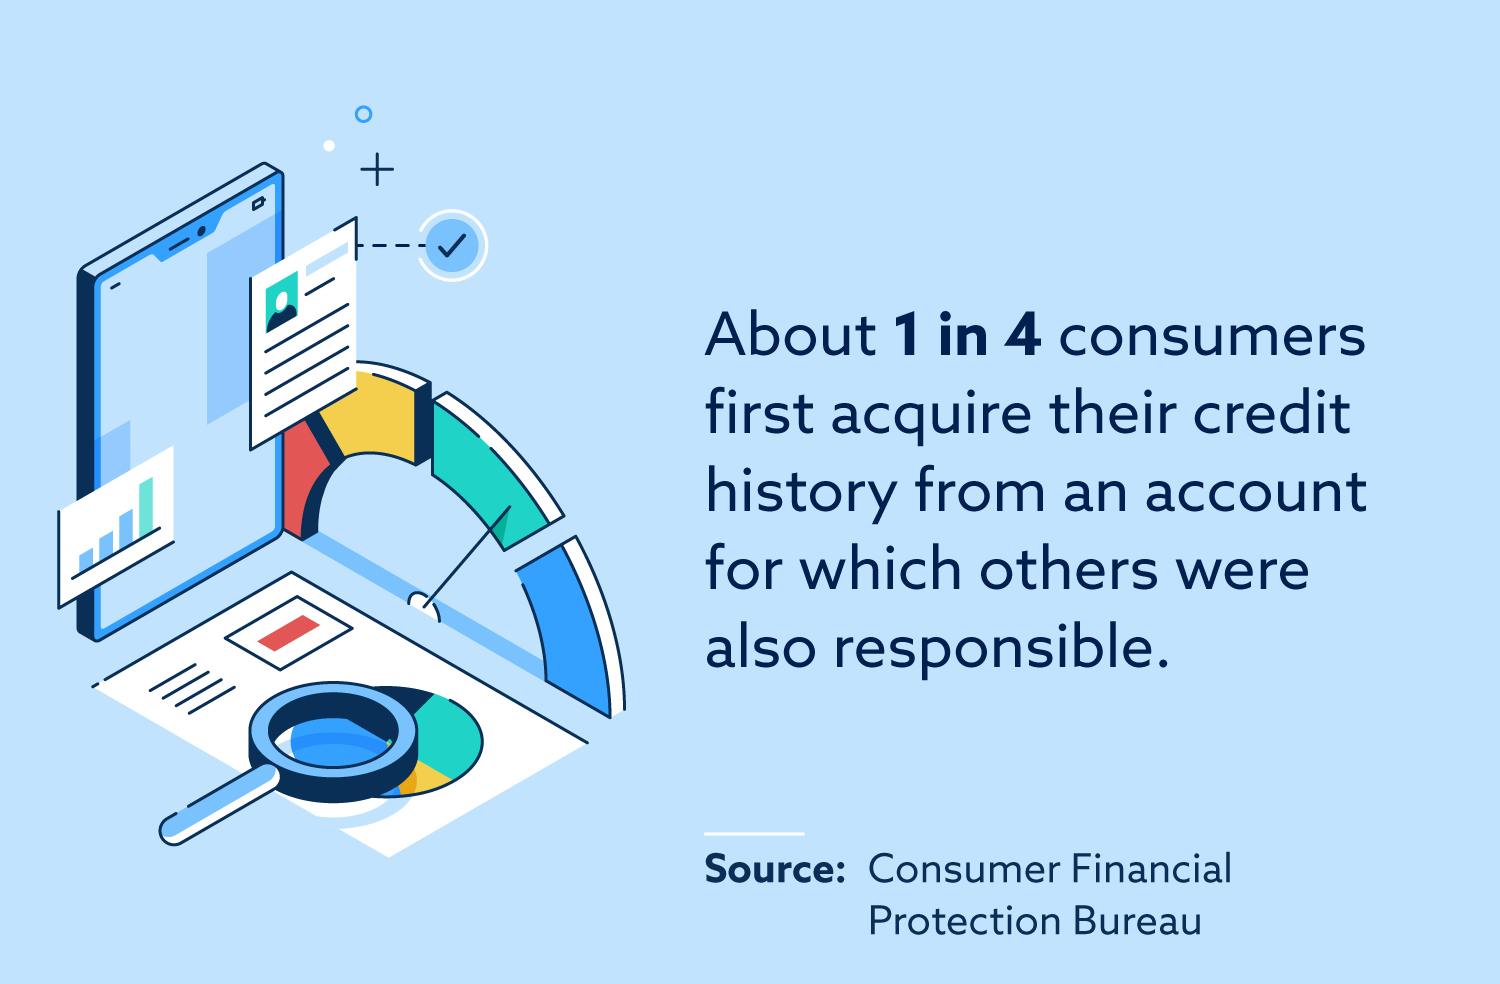 About 1 in 4 consumers first acquire their credit history from an account for which others were also responsible.